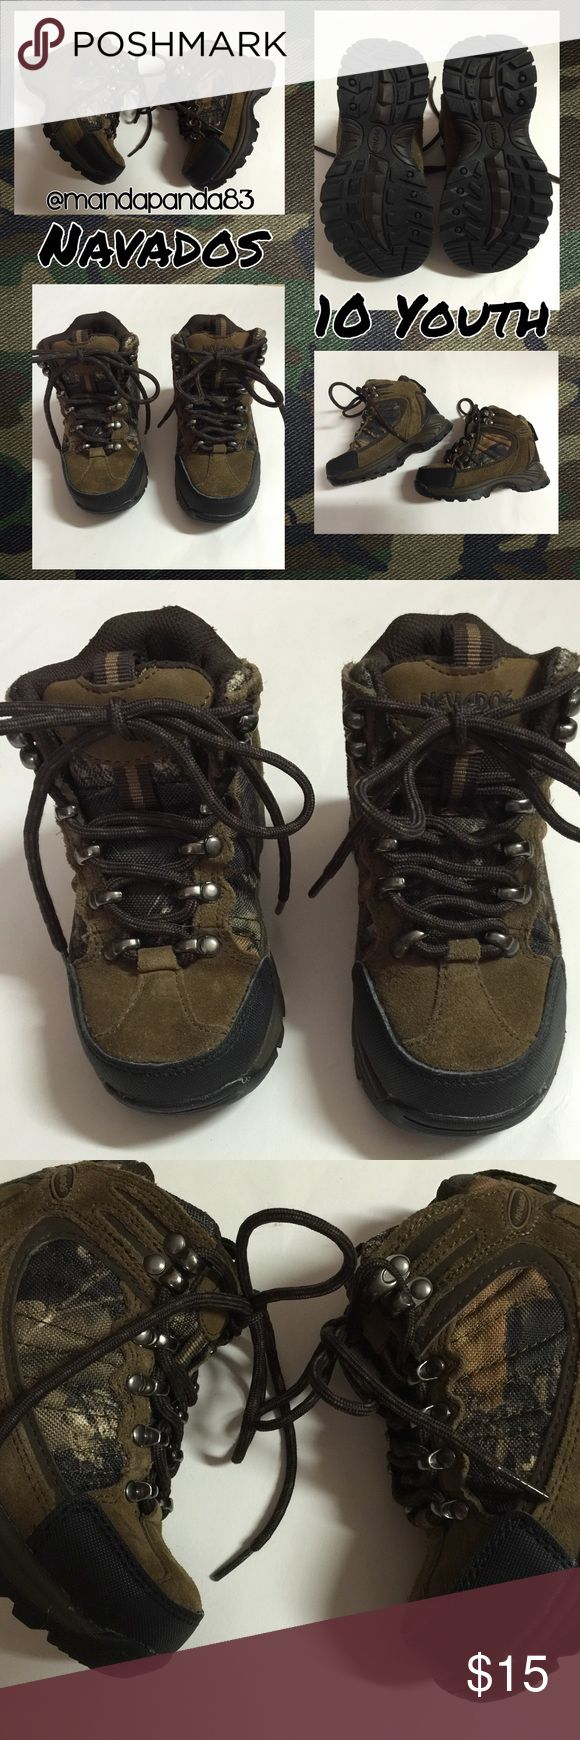 Nevados Brown & Camo Boots💚10 Toddler Boys EUC 💚 In like new condition. No signs of wear and Conner didn't want them. They are VERY sturdy boots with brown/black sole, brown suede outline w/ a Camo print area on both sides of the boots. I don't think these have ever been worn.. Nevados Shoes Boots